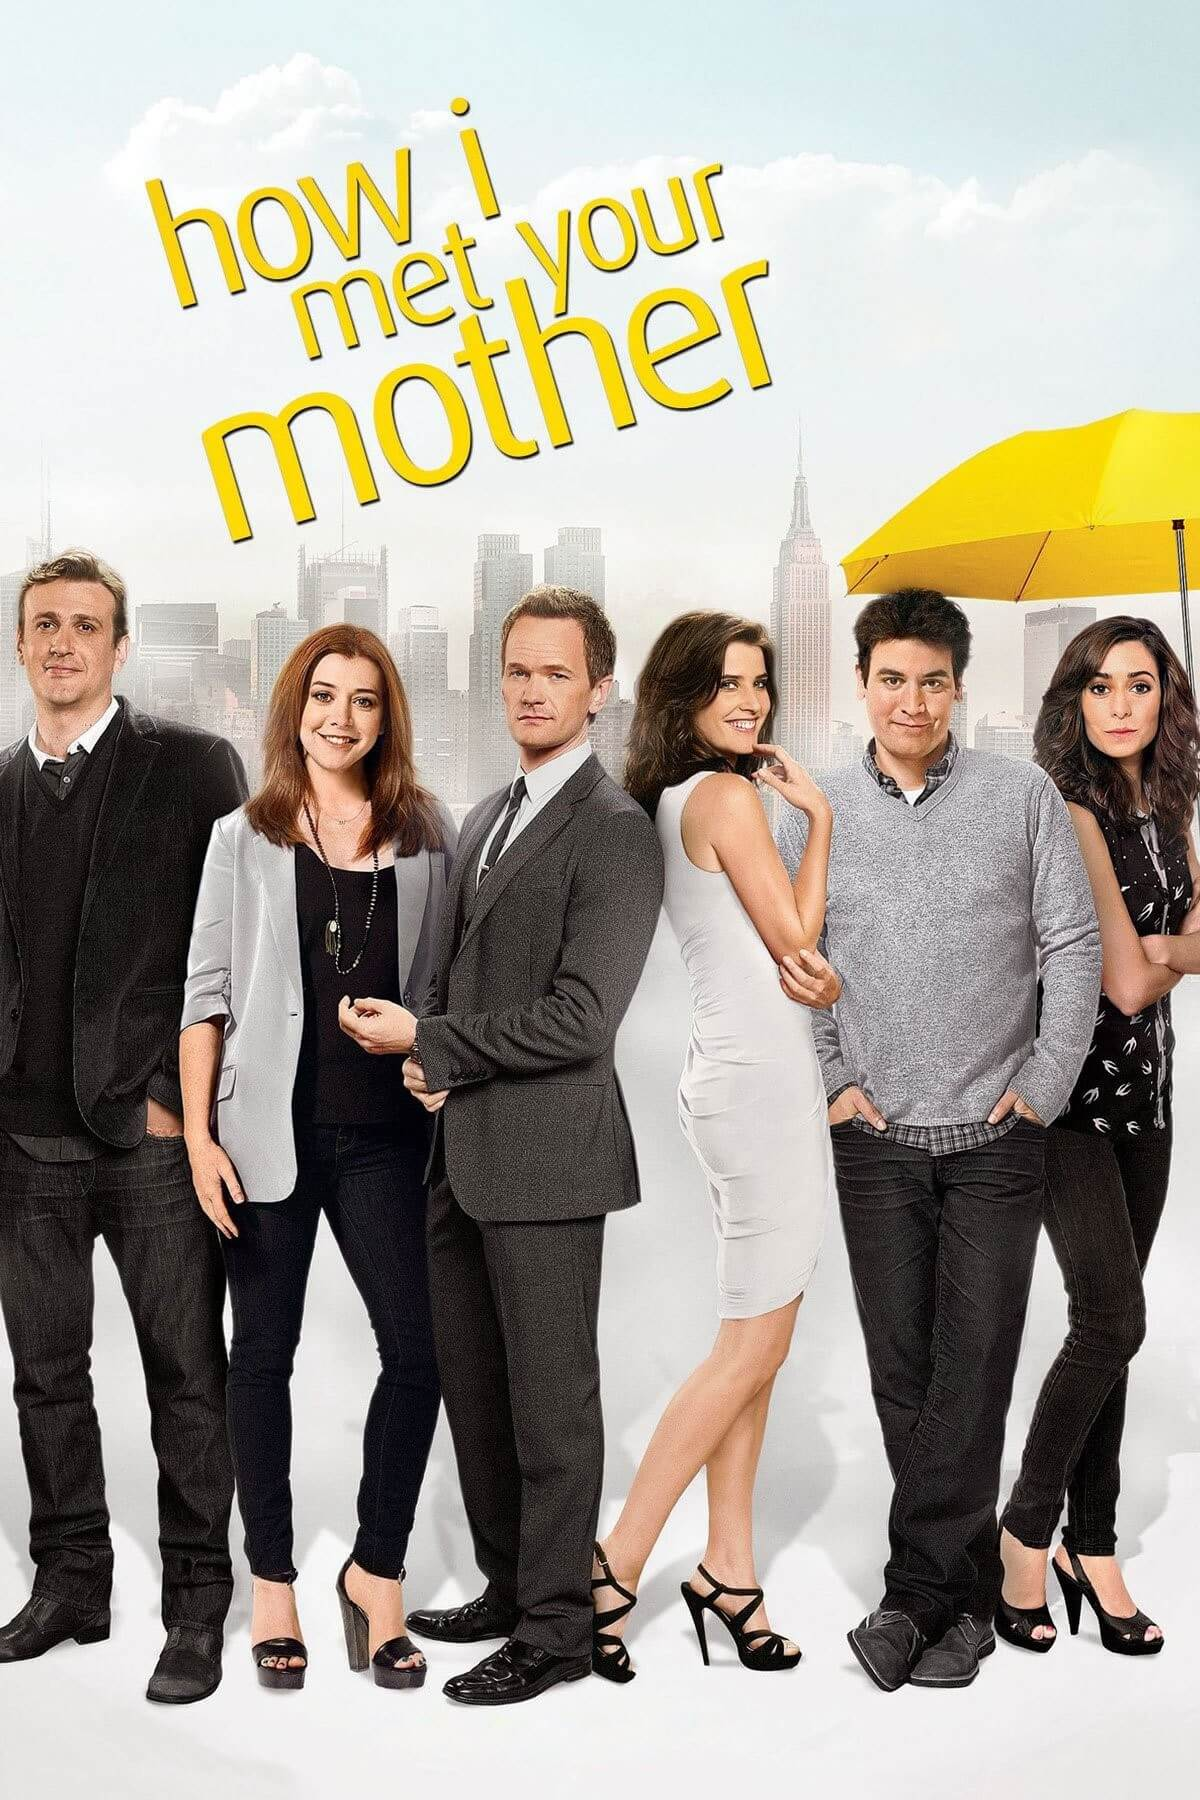 How I met your mother Hotstar Series